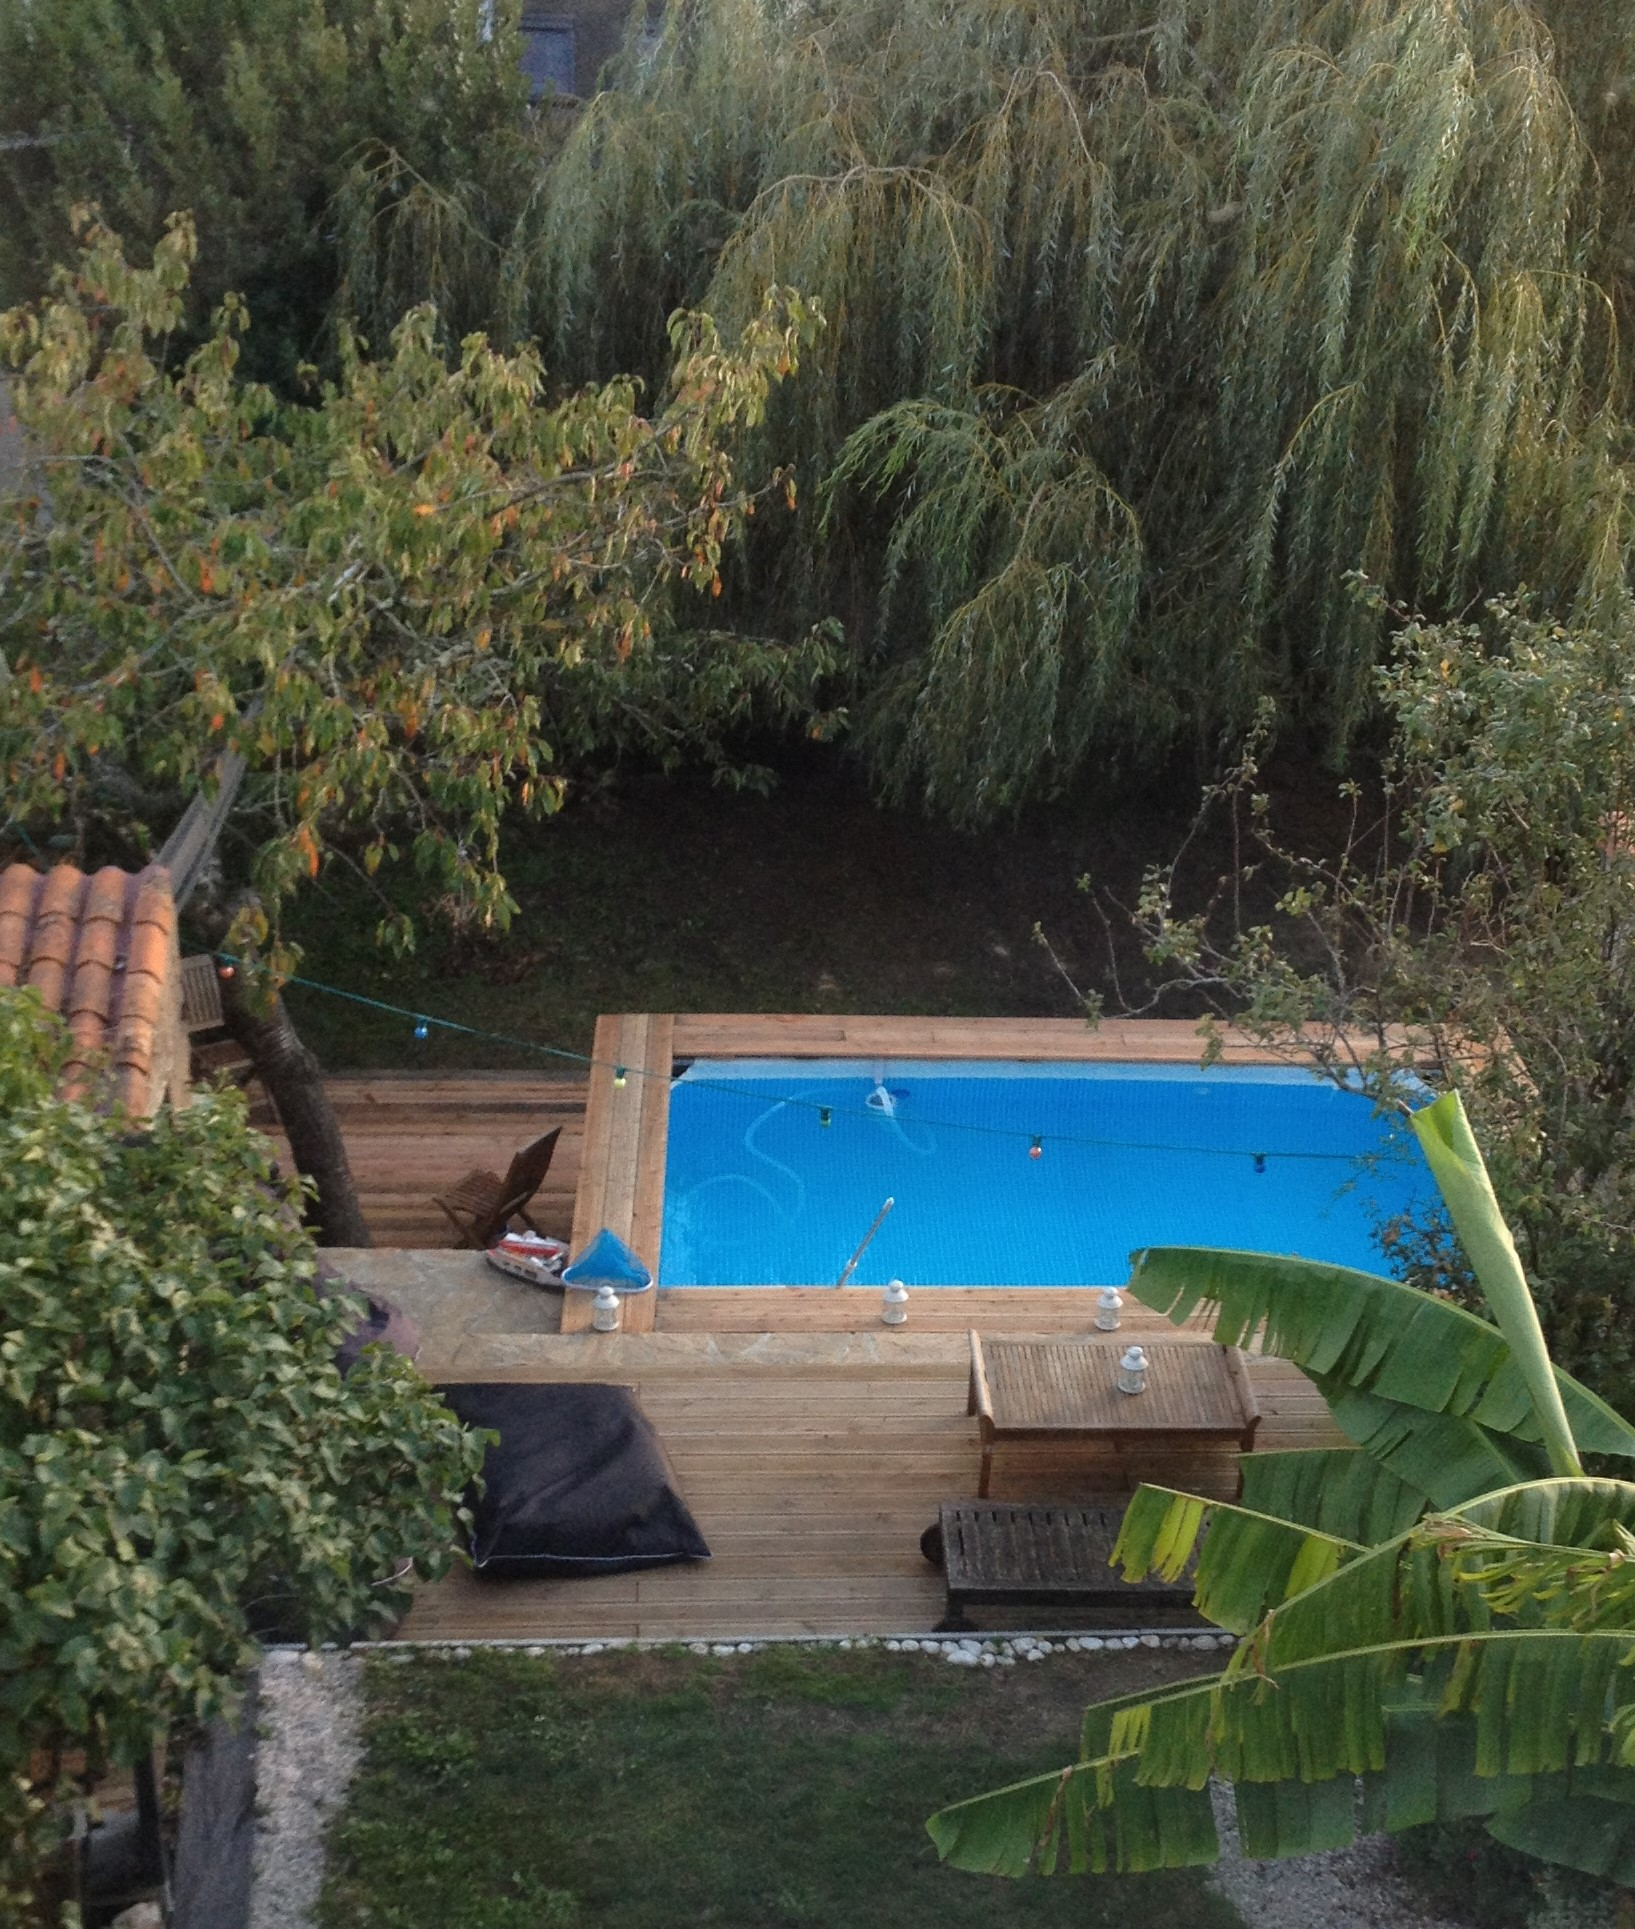 Comment encastrer sa piscine hors sol blog de raviday - Piscine intex aspect bois ...